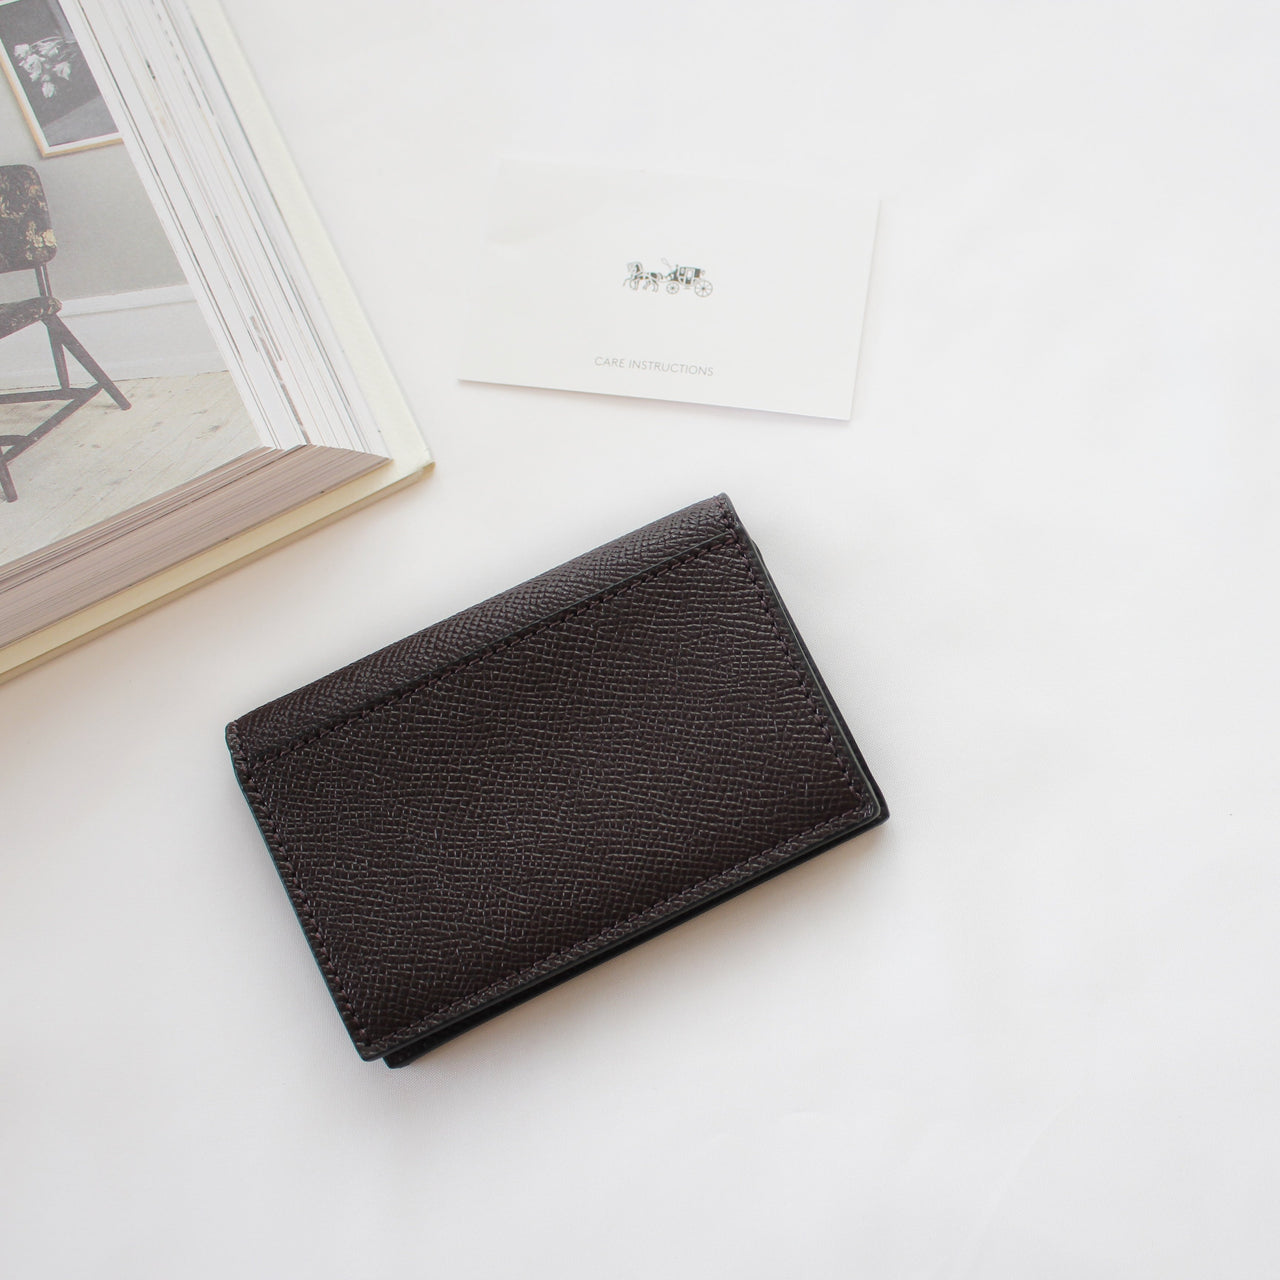 COACH BIFOLD CARD CASE IN CROSSGRAIN LEATHER - LovelyMadness Clothing Online Fashion Malaysia